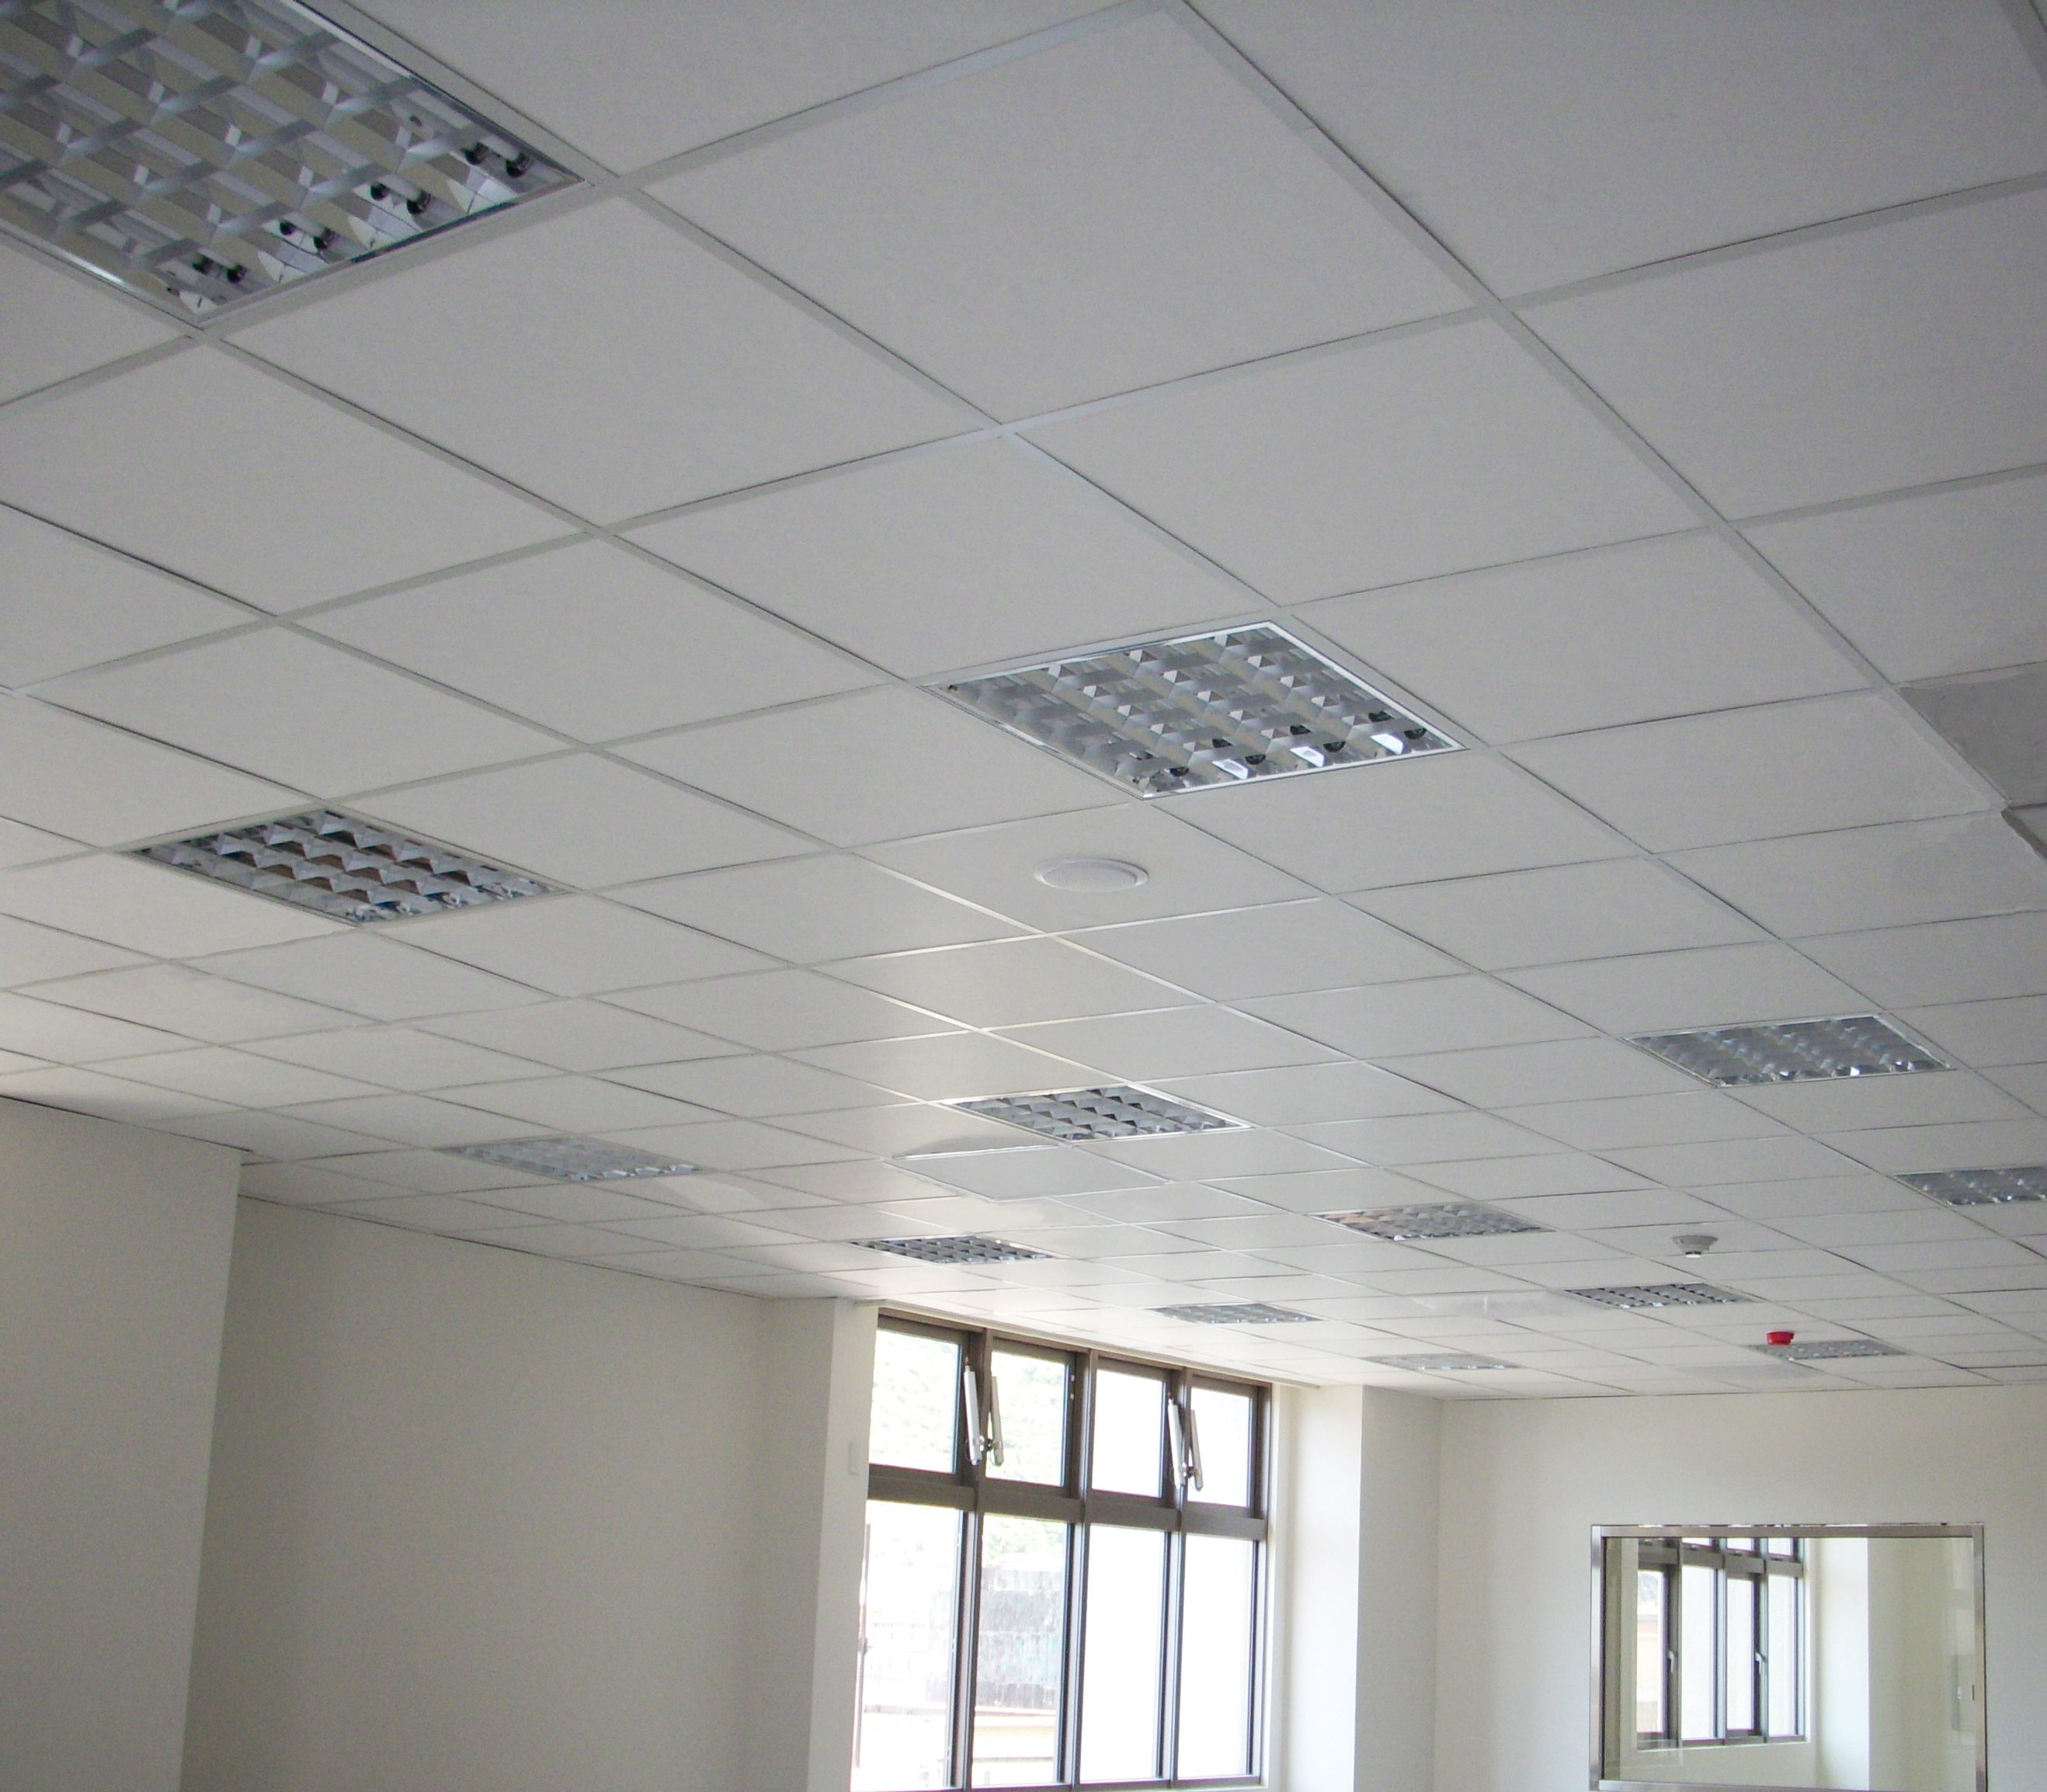 T24 3325 Suspended Ceiling Grid Long Range Suspended